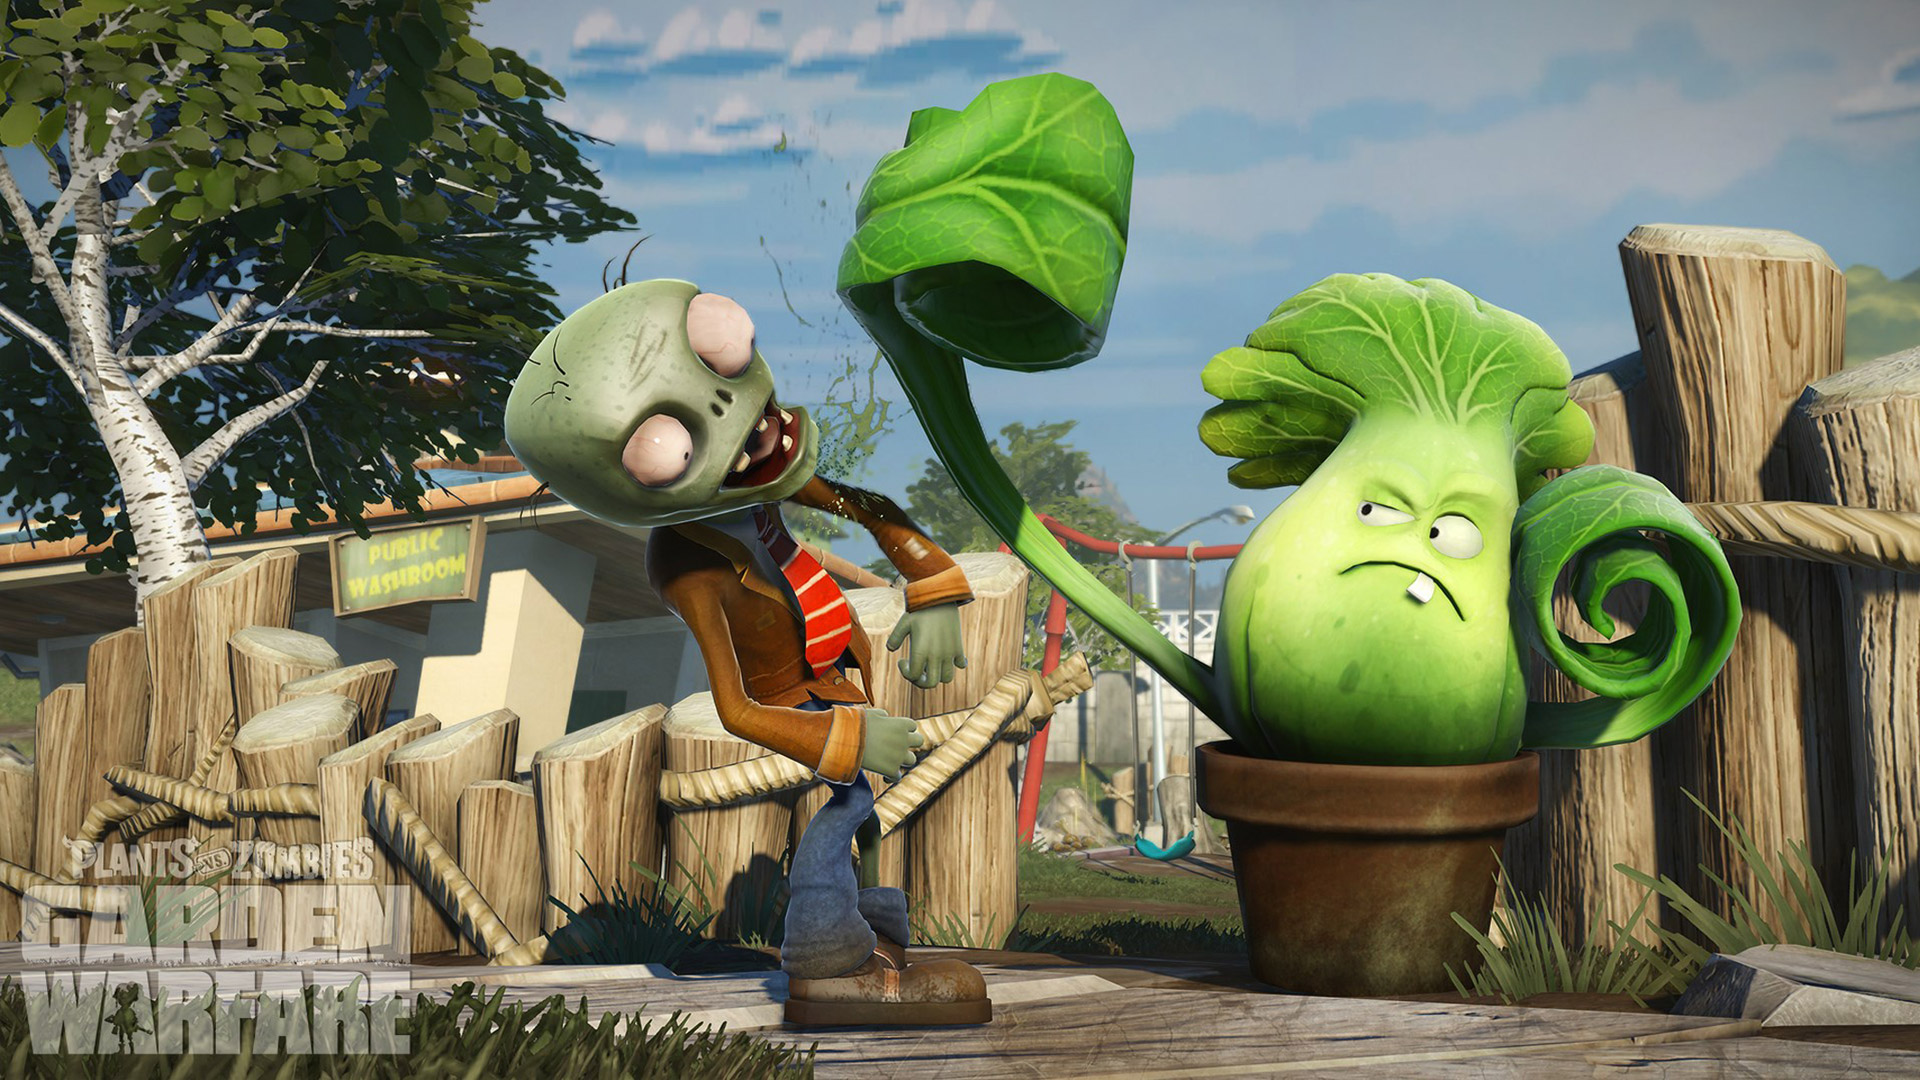 plants vs zombies garden warfare wallpaper 6 | wallpapersbq